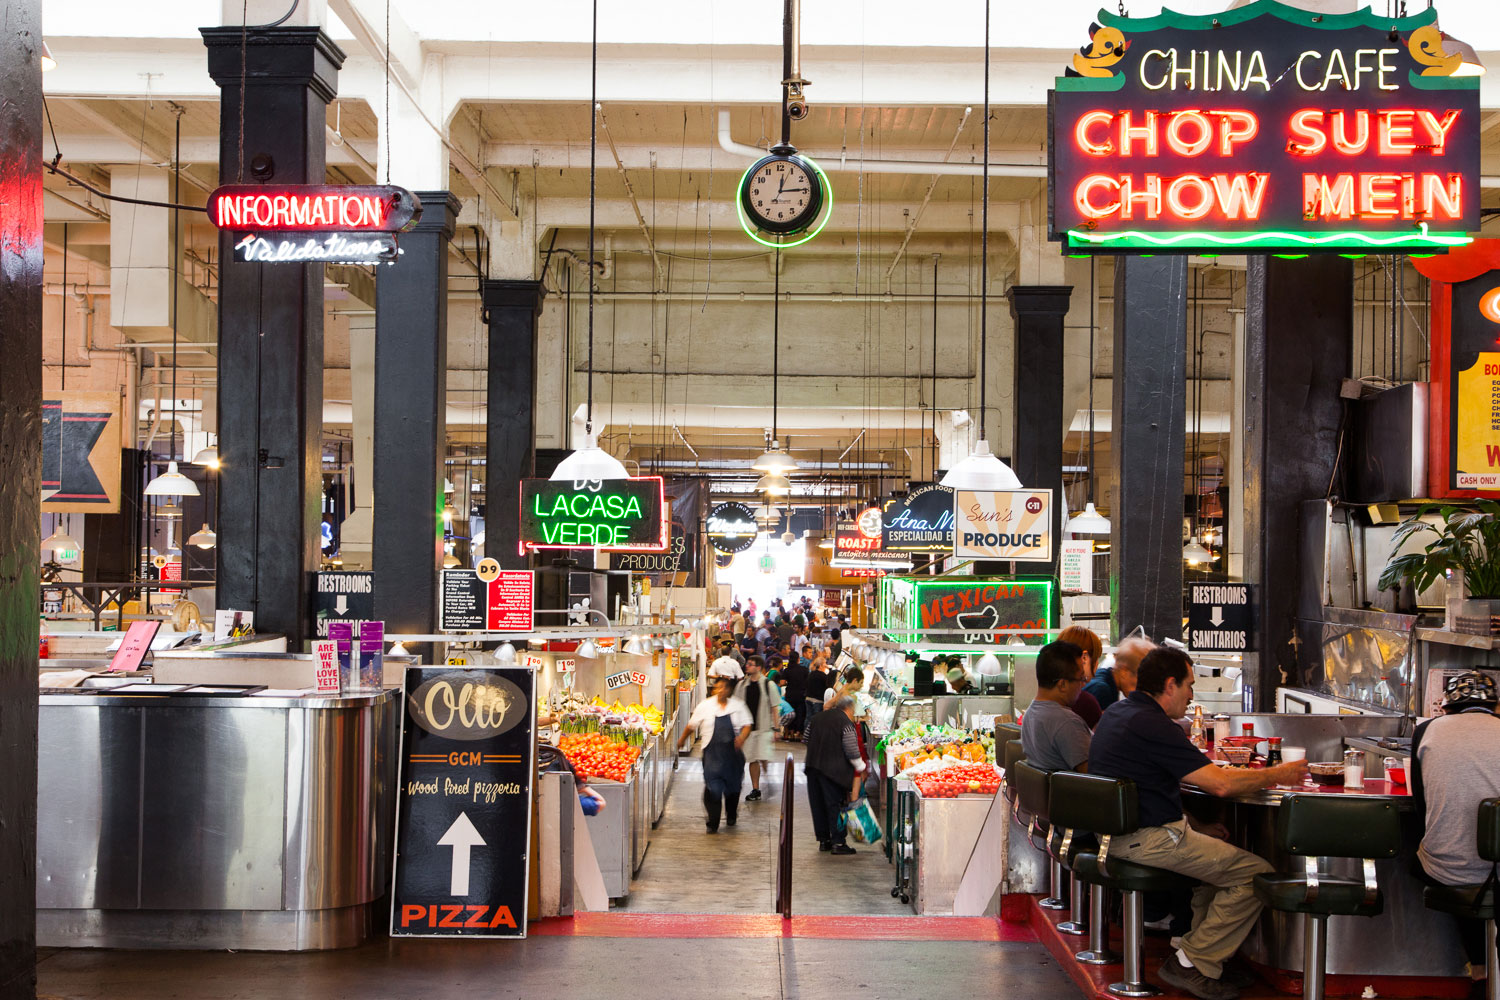 Grand Central Market in DTLA - * * * * * 5 Stars!One of our favorite BIKE FRIENDLY eateries in LA is the historic Grand Central Market on Broadway. What makes this place BIKE FRIENDLY? Well they have, plenty of secured bike parking on both the East Broadway entrance and West Hill Street entrances. Security keeps a watch while you eat. This place has lots of eat and drink options to select from. From new hipster expensive to old school on the cheap!NOW OPEN FROM 8AM - 10PM SEVEN DAYS A WEEK! 317 S. BROADWAY LOS ANGELES, CA 90013 TEL (213) 624-2378